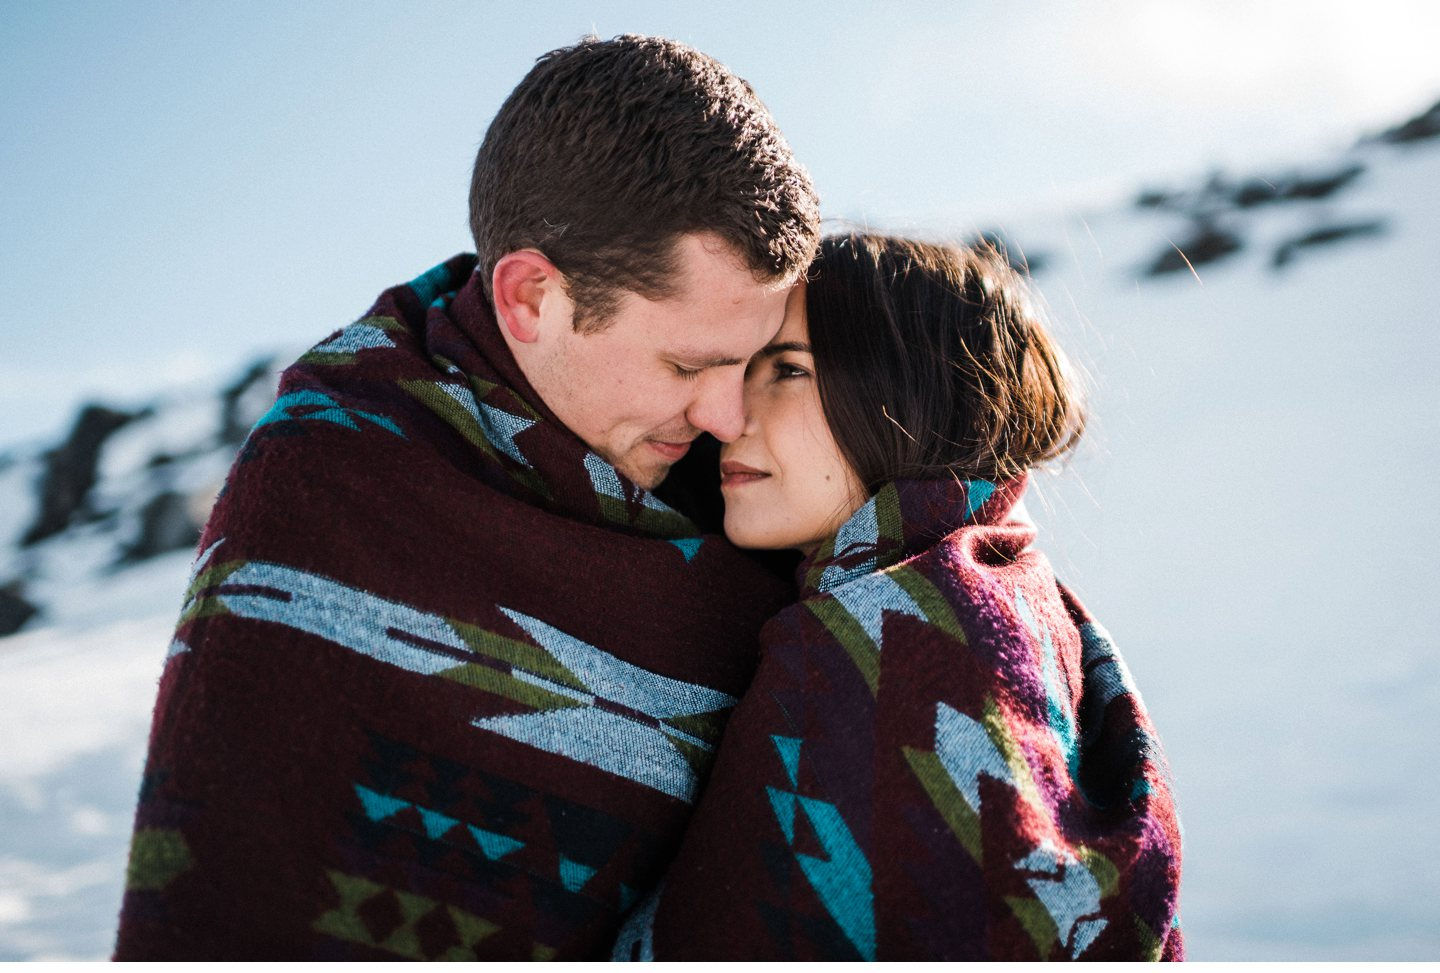 019-Cardrona-Couples-Session-Photography.jpg